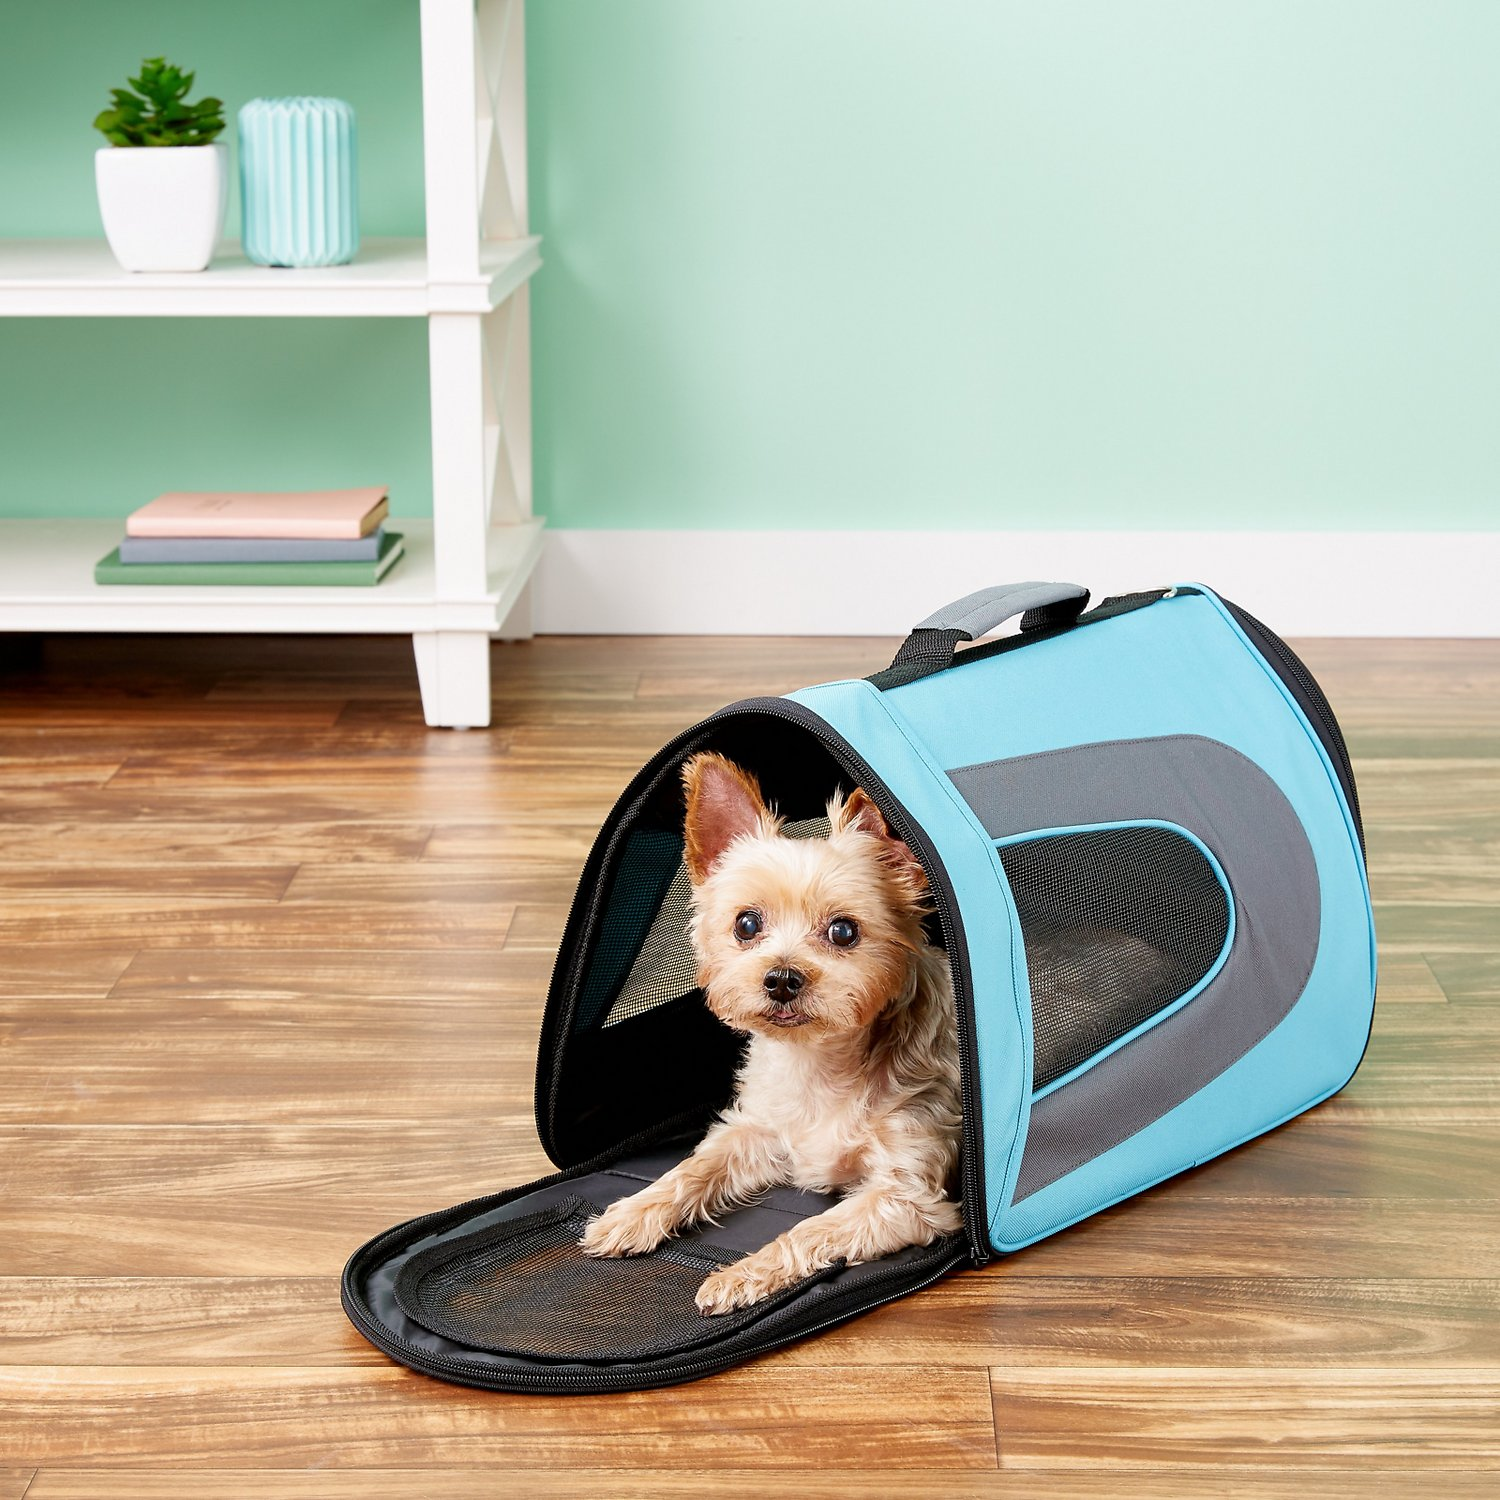 bd6c49f2d8f4 Pet Magasin Soft Sided Airline-Approved Dog & Cat Travel Carrier ...